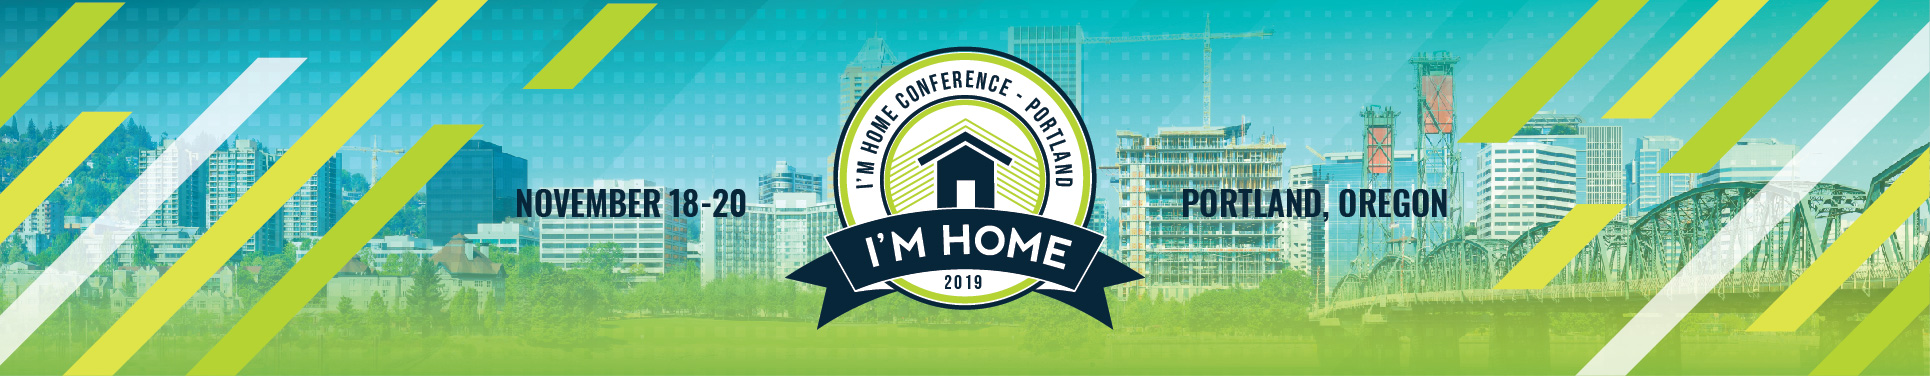 2019 I'M HOME Conference